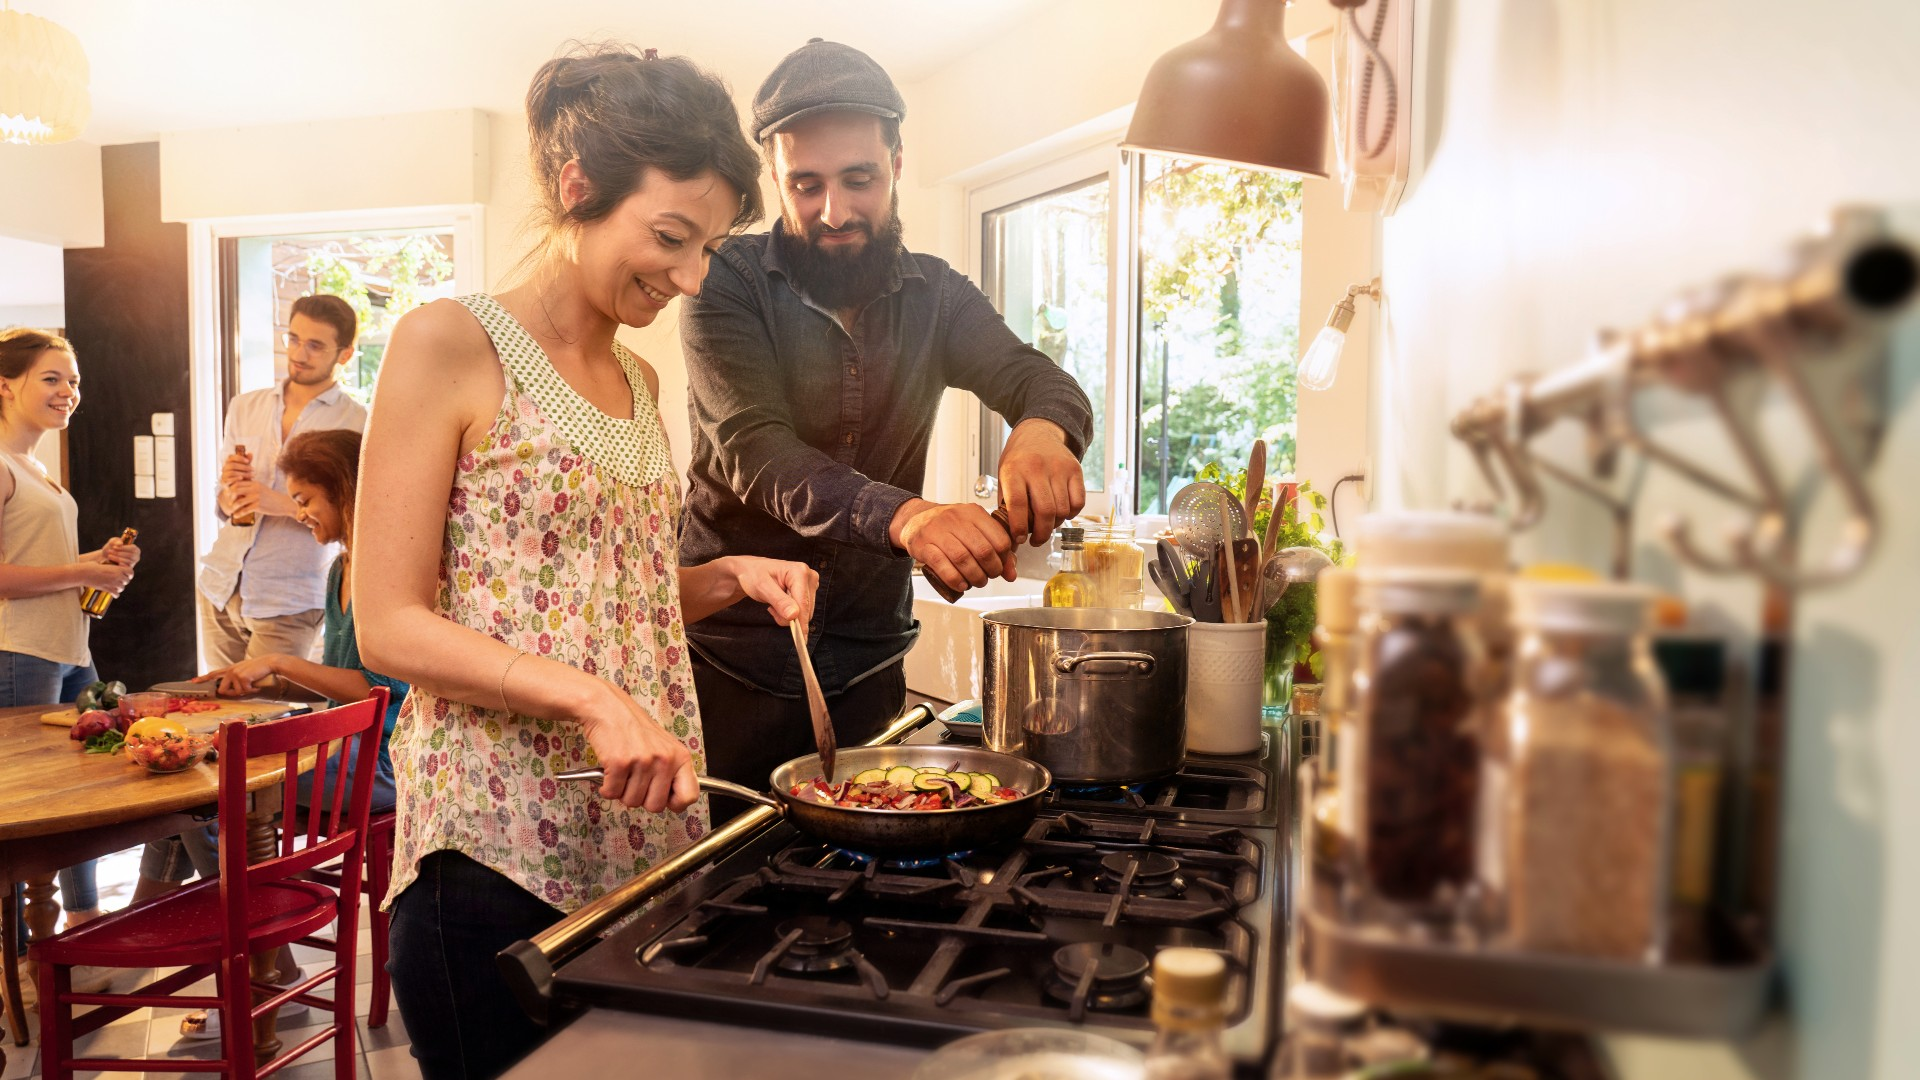 couple cooking with friends at kitchen table